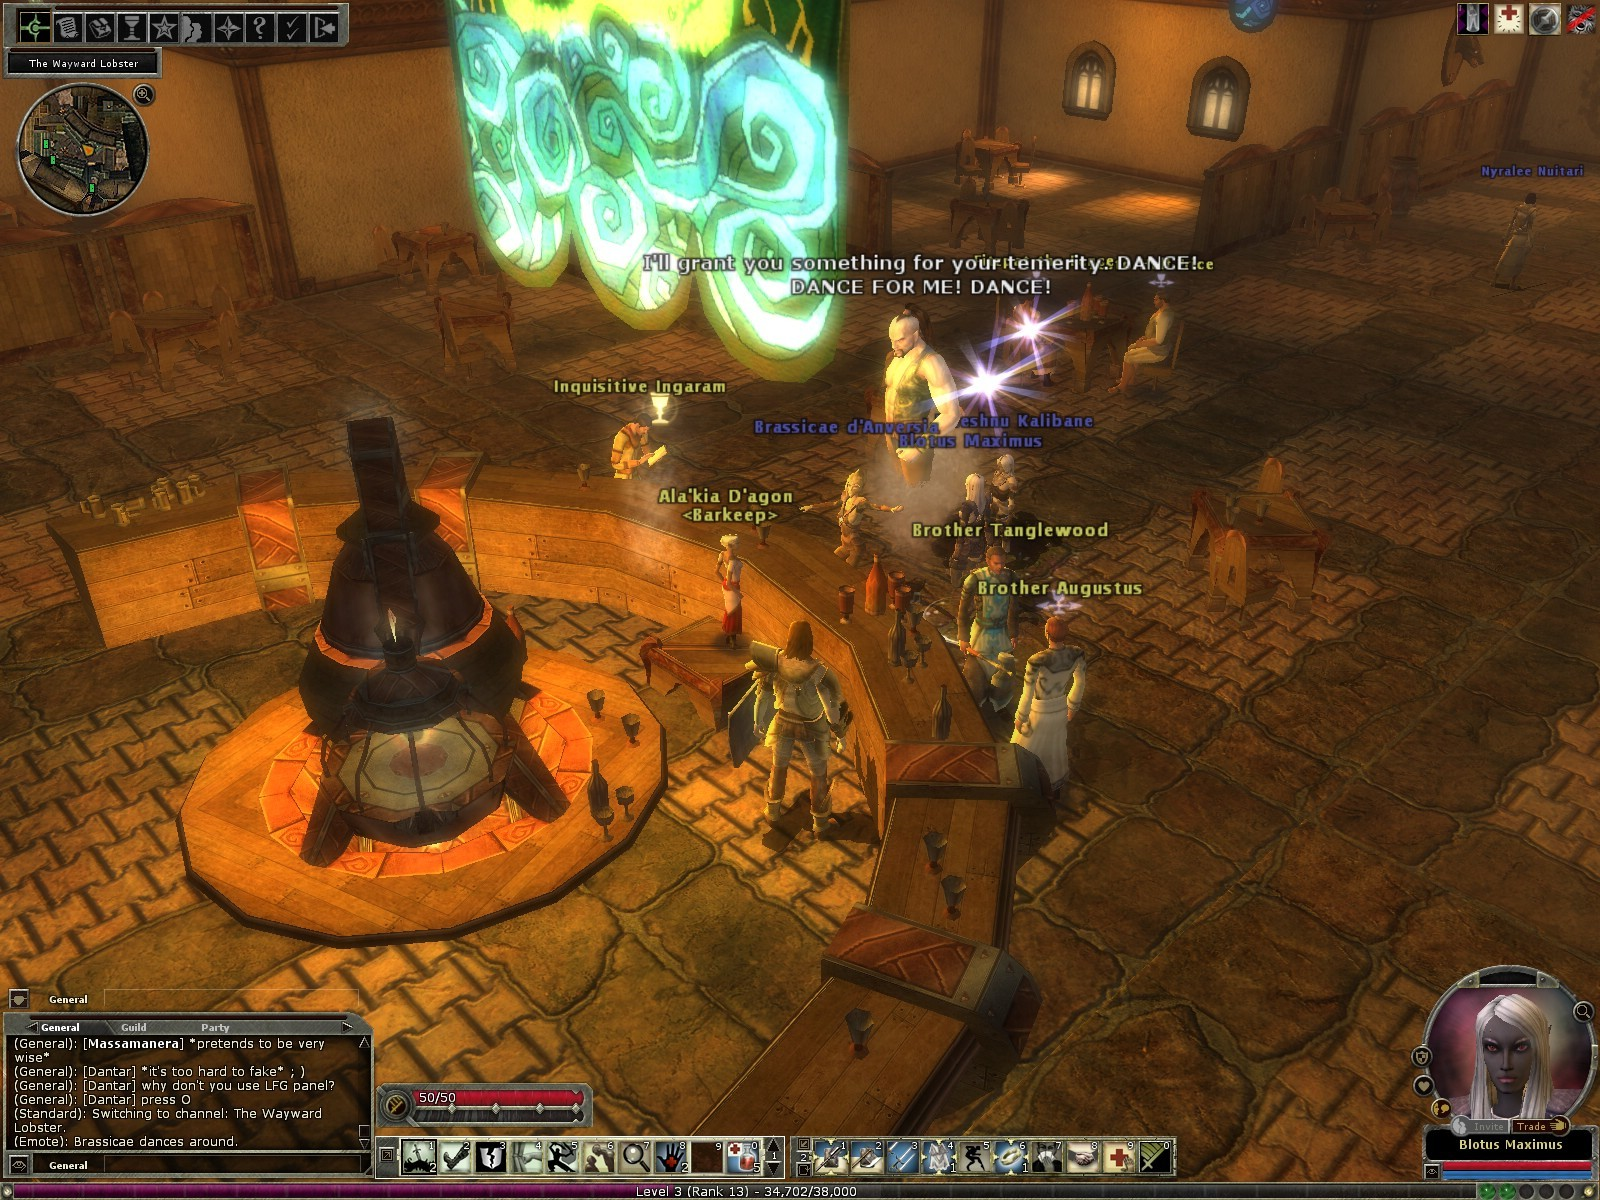 Dungeons & Dragons Online - DDO: Djinni in tavern during event. Quite rude type. Dance for me b..... ;P Heheh